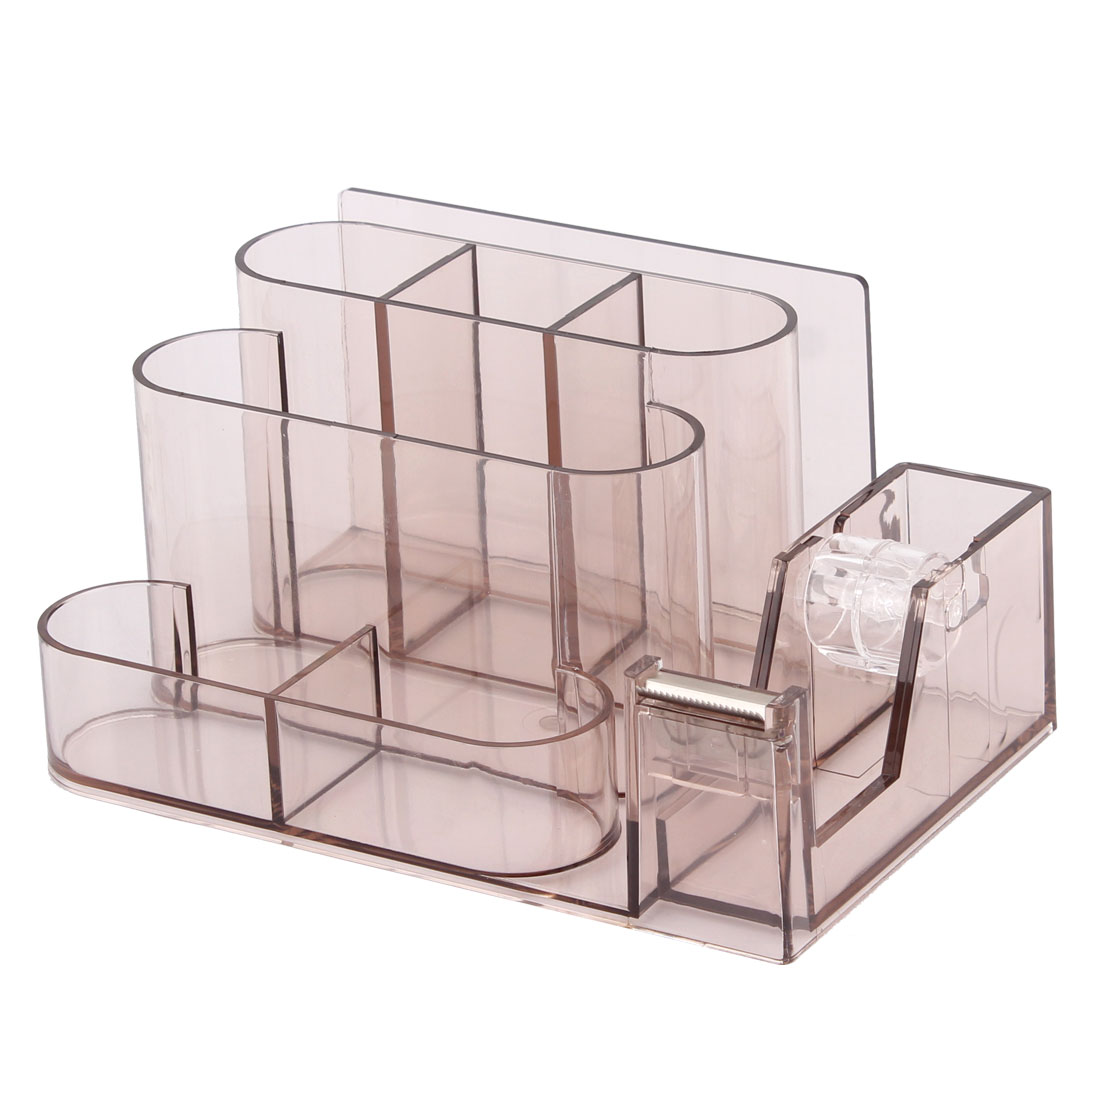 Office Plastic 6 Compartments One Tape Roller Pencil Pen Holder Clear Brown